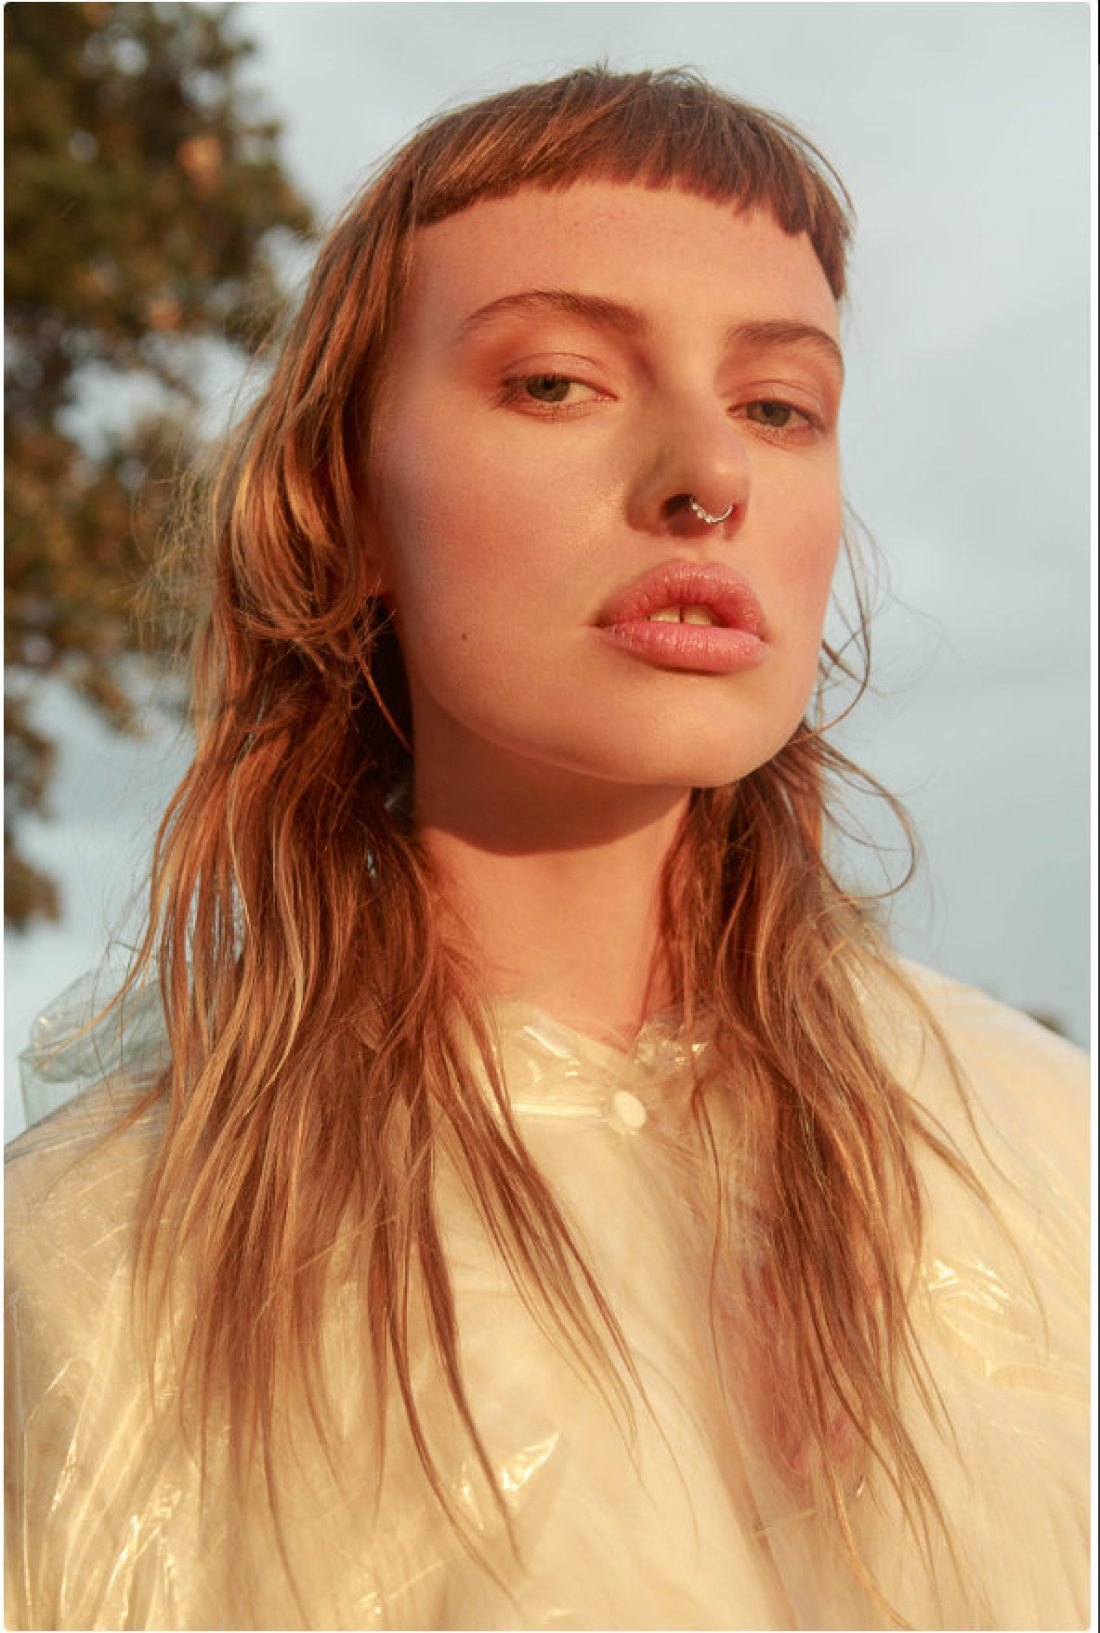 Alannah photographe by Amelia J. Dowd for Bullet Magazine : )  Styling: Thomas Townsend  Makeup: Vic Anderson  Assistant: Mitch O'Neill  Model: Alannah